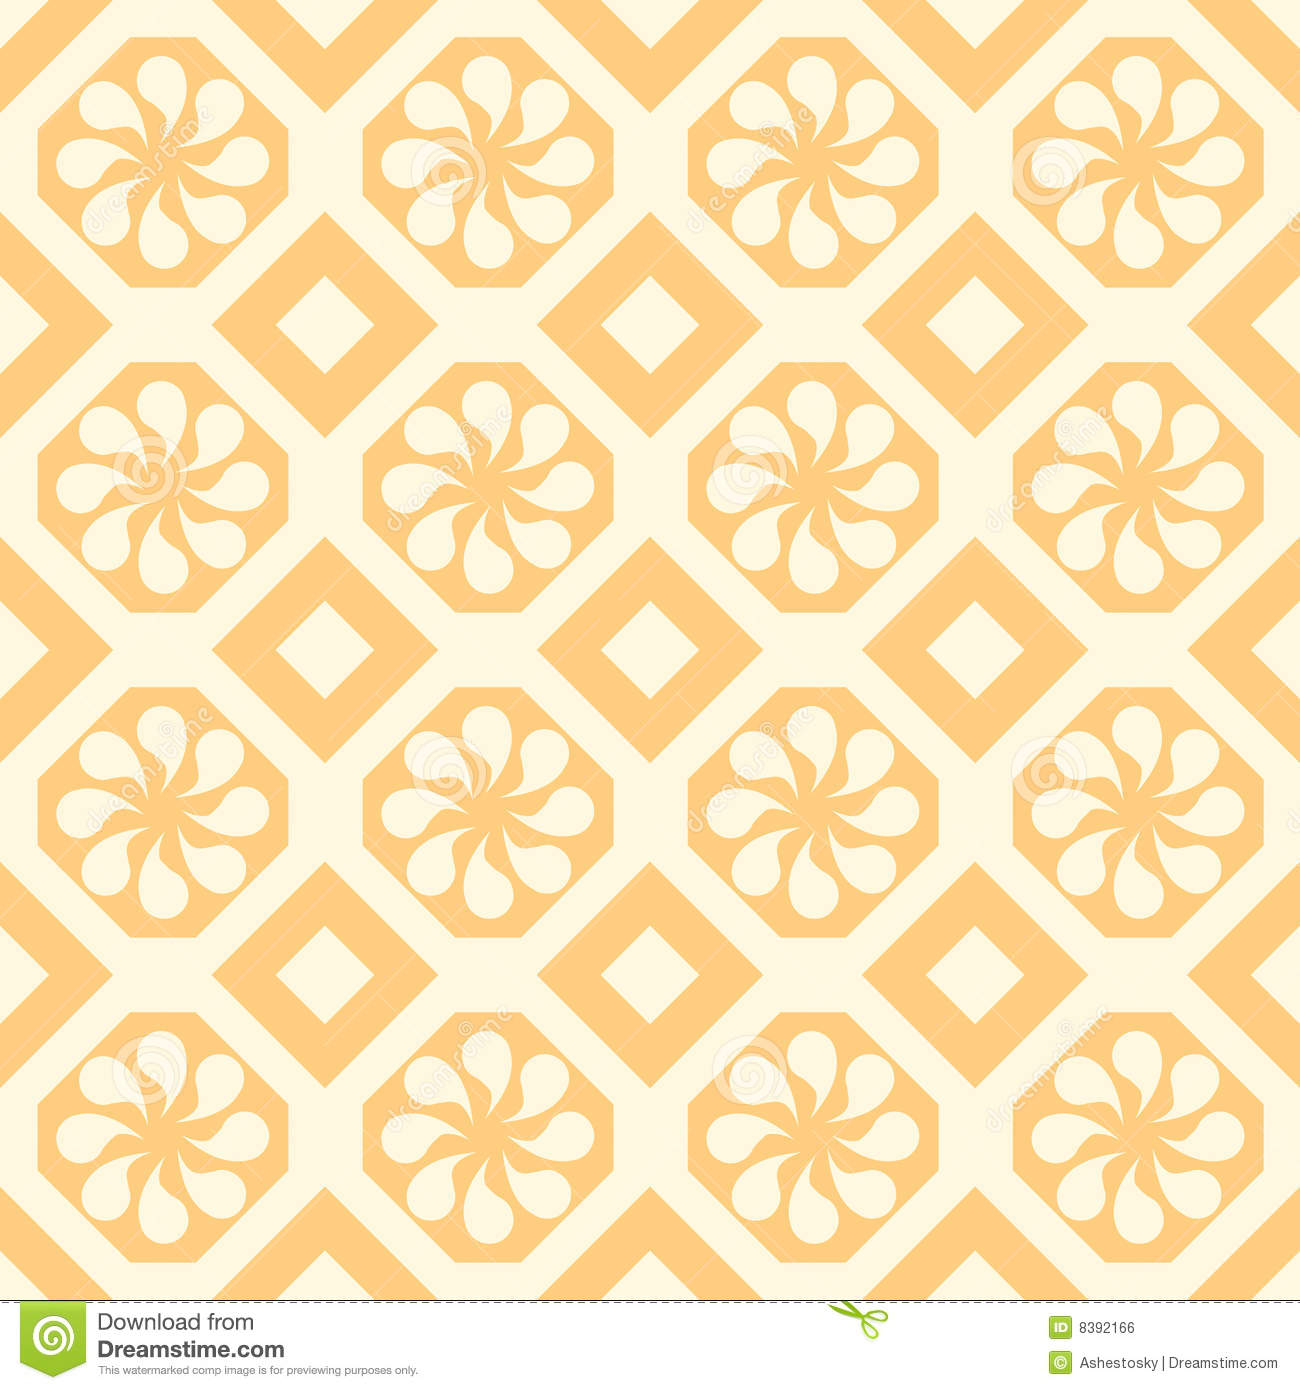 Fabric Tile Wallpaper Texture Kitchen Royalty Free Stock